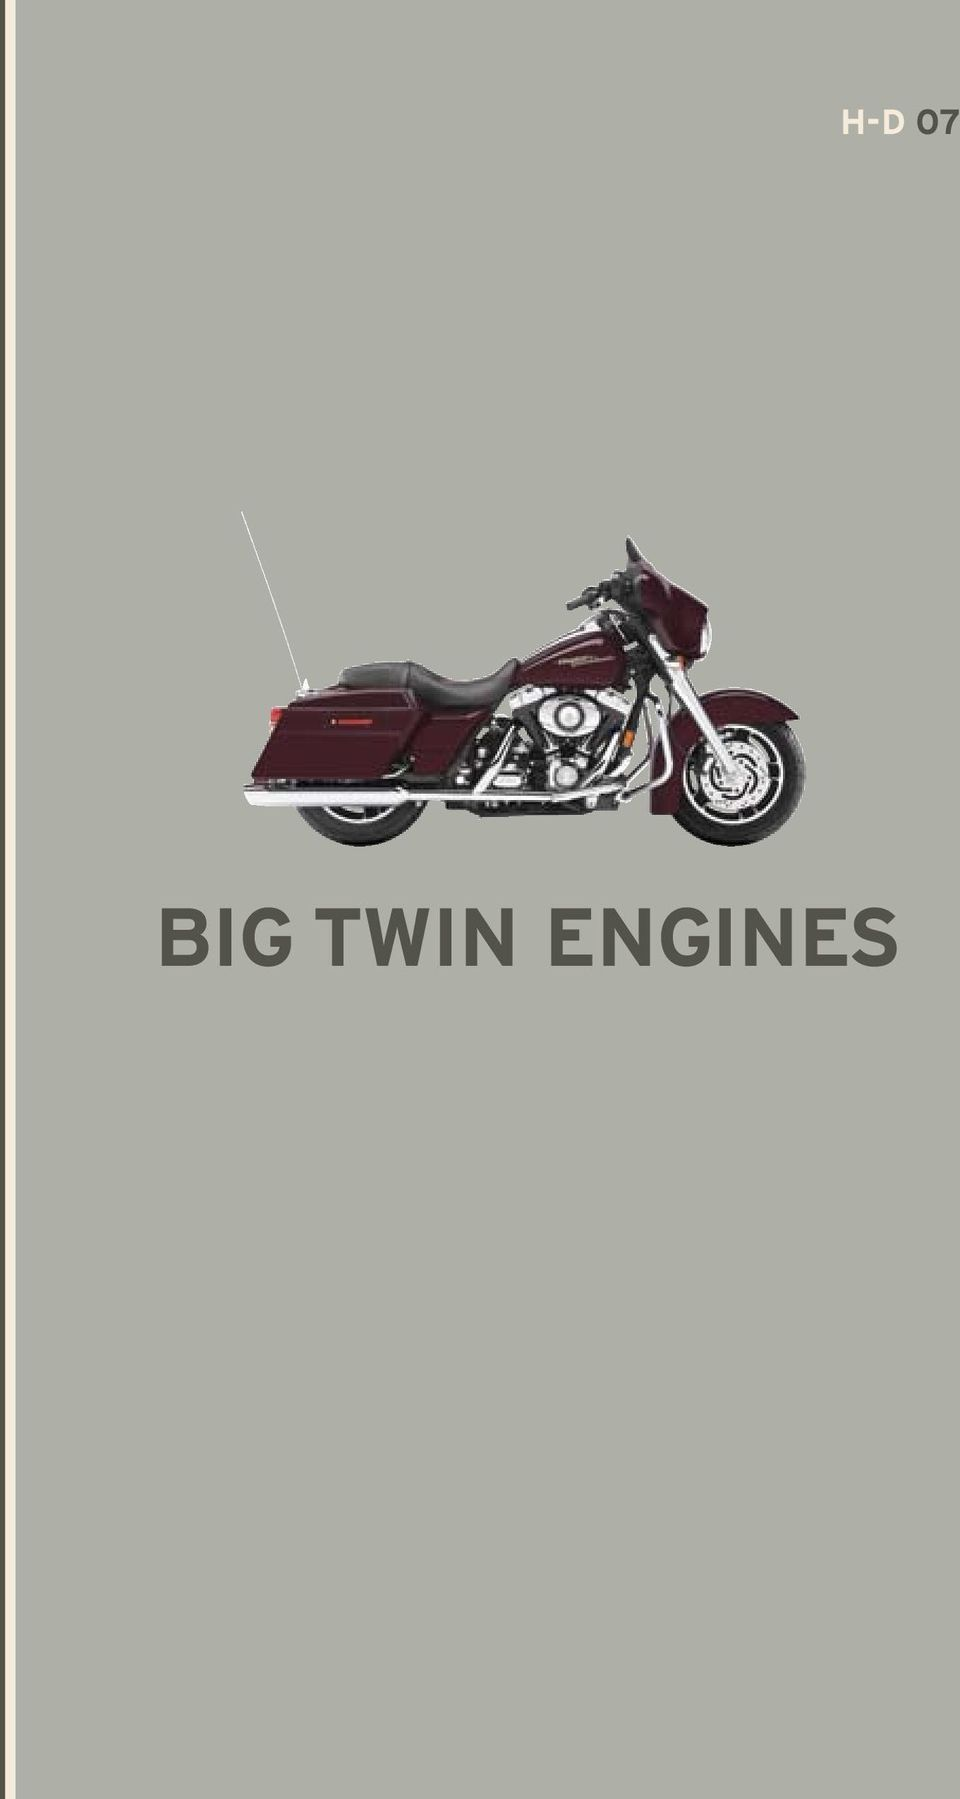 Harley Davidson University Tech N Ical F Or U M 2007 Model Year Pdf 2009 Fuse Box Location 10 Technical Forum Big Twin New Cam 96 Engine Powertrain Specifications Displacement Cu In Cc Up From 88 Achieved By Stroke